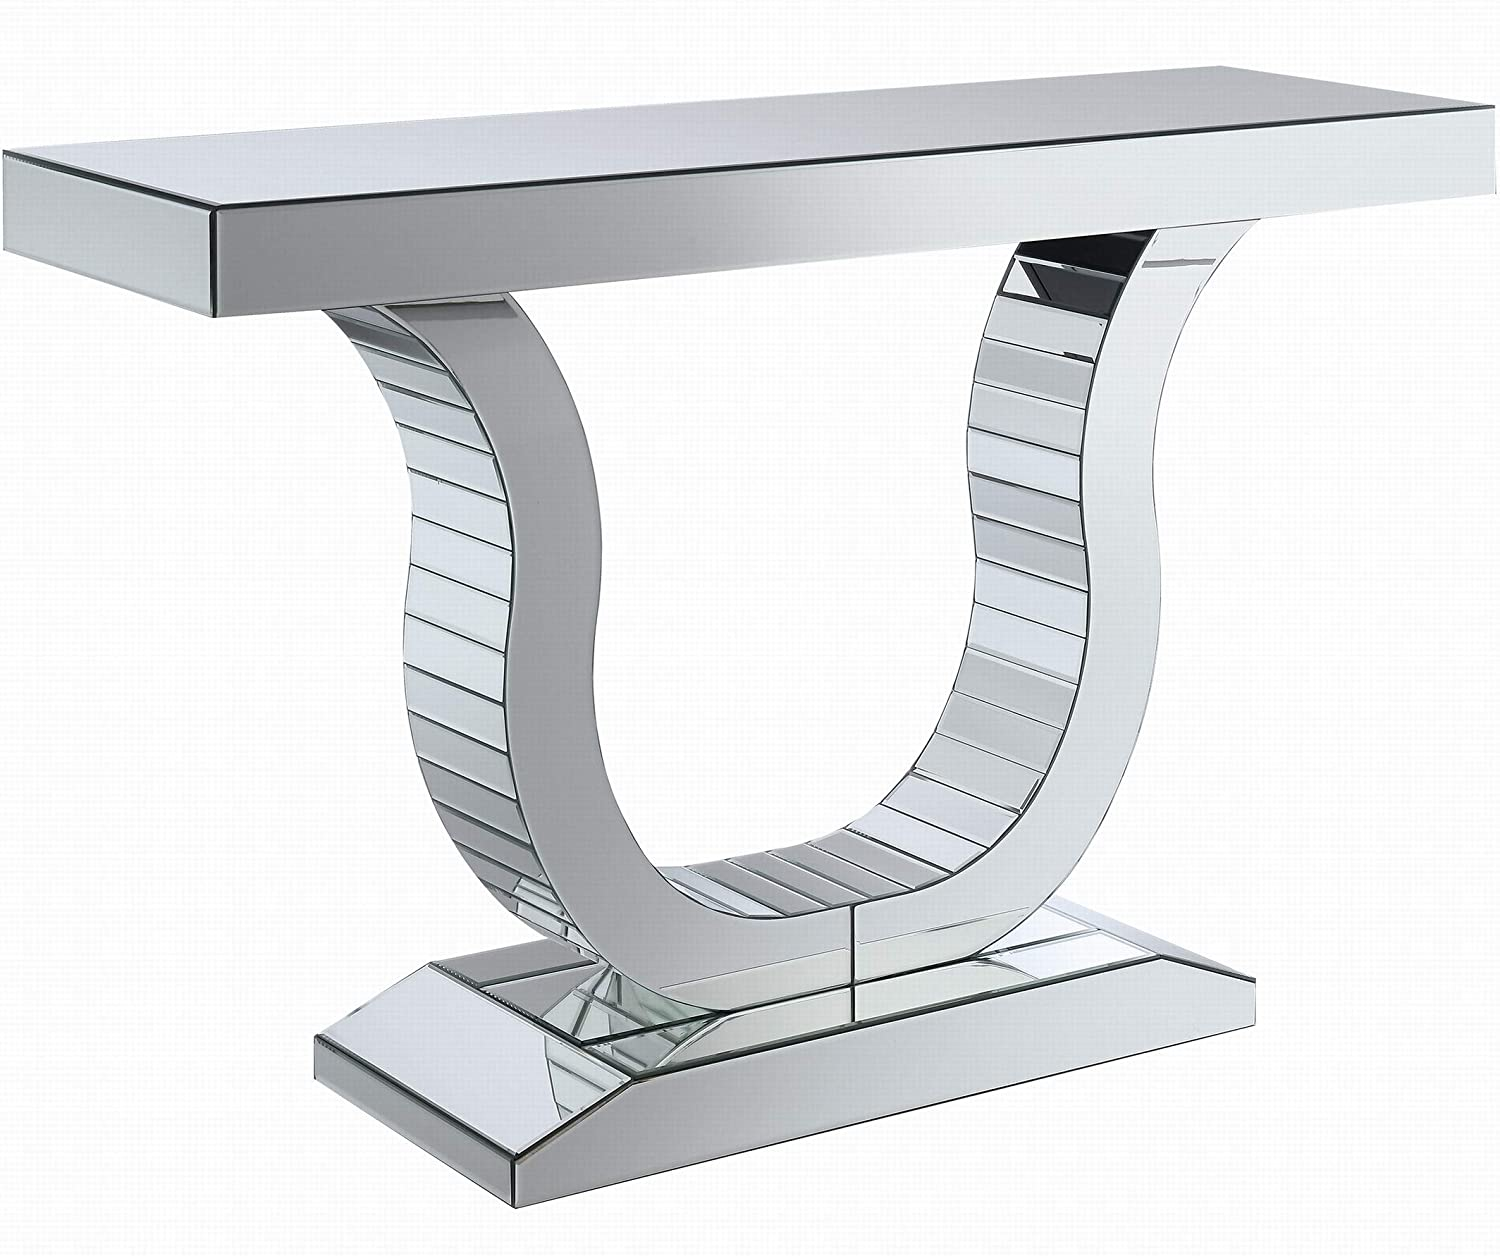 Coaster Home Furnishings Coaster Contemporary U Shaped Base Silver Console Table with Mirrored Panels, 47.25